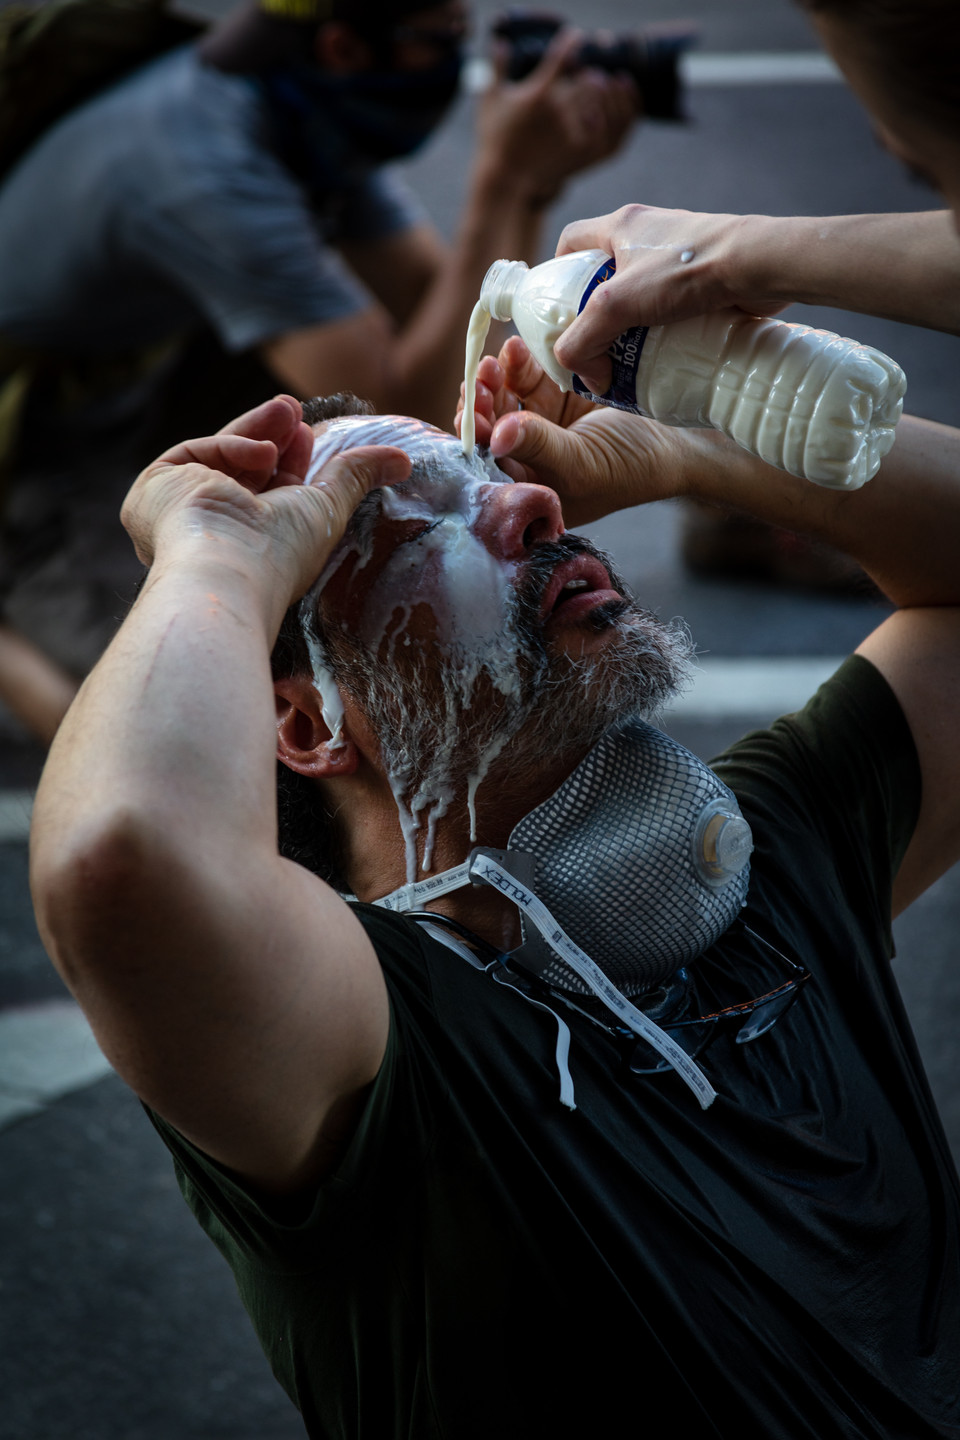 Jim Lo Scalzo, the 2016 White House News Photographers Association's photographer of the year, has milk poured on his eyes after being pepper-sprayed by police at protests outside of the White House in Washington, D.C., on May 30, 2020.